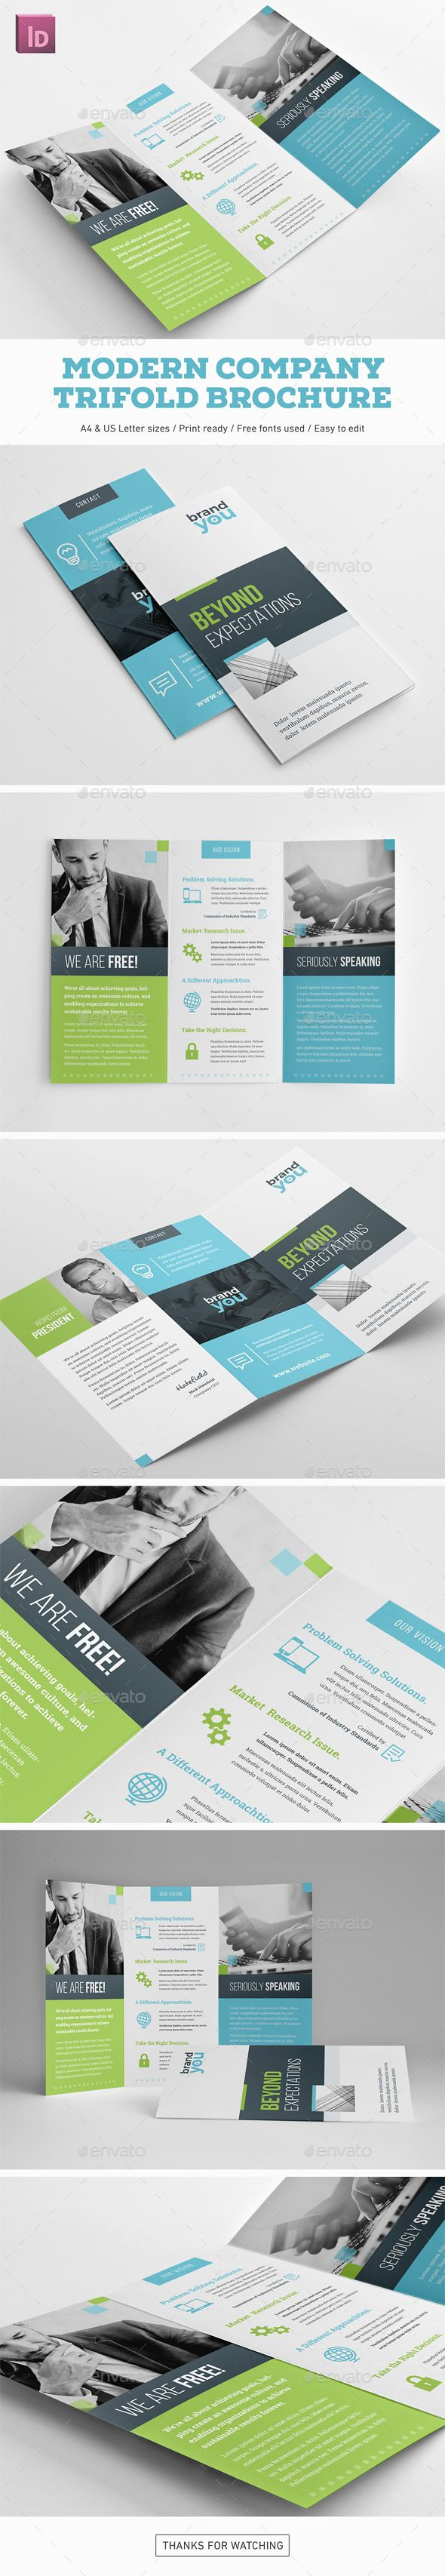 Modern Company Trifold Brochure Template InDesign INDD | Trifold ...